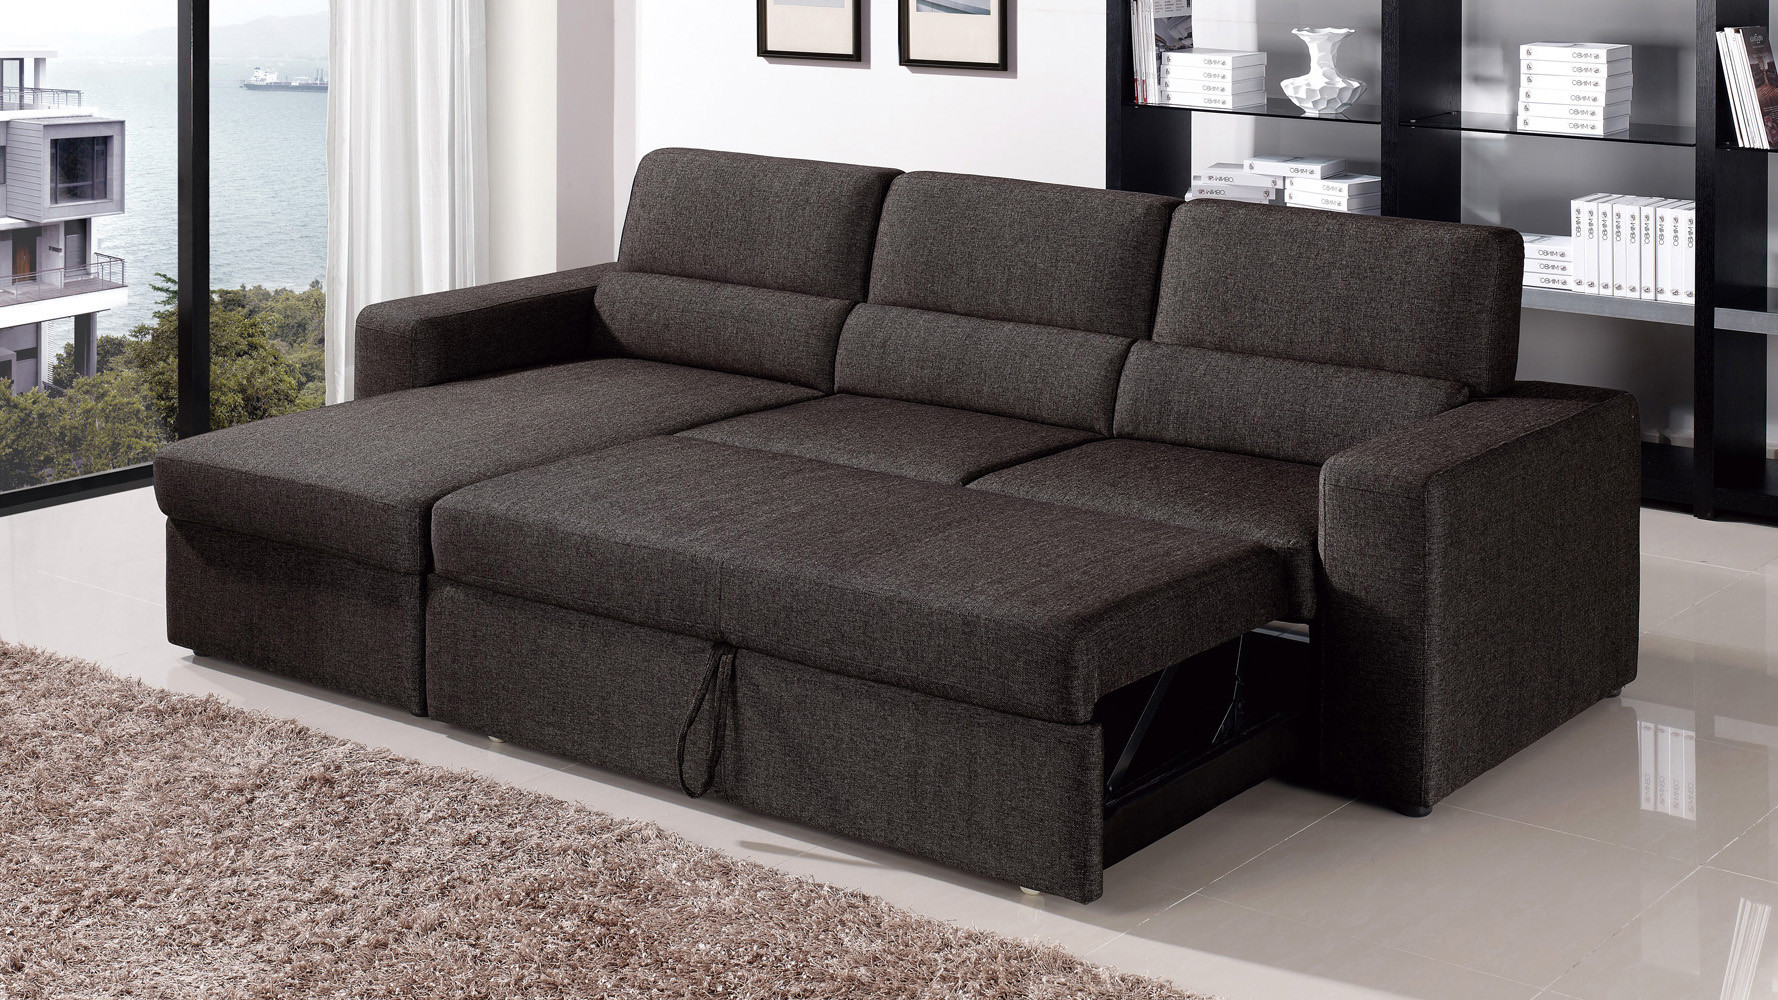 Best ideas about Sofa Sleeper Sectional . Save or Pin Black Brown Clubber Sleeper Sectional Sofa Now.